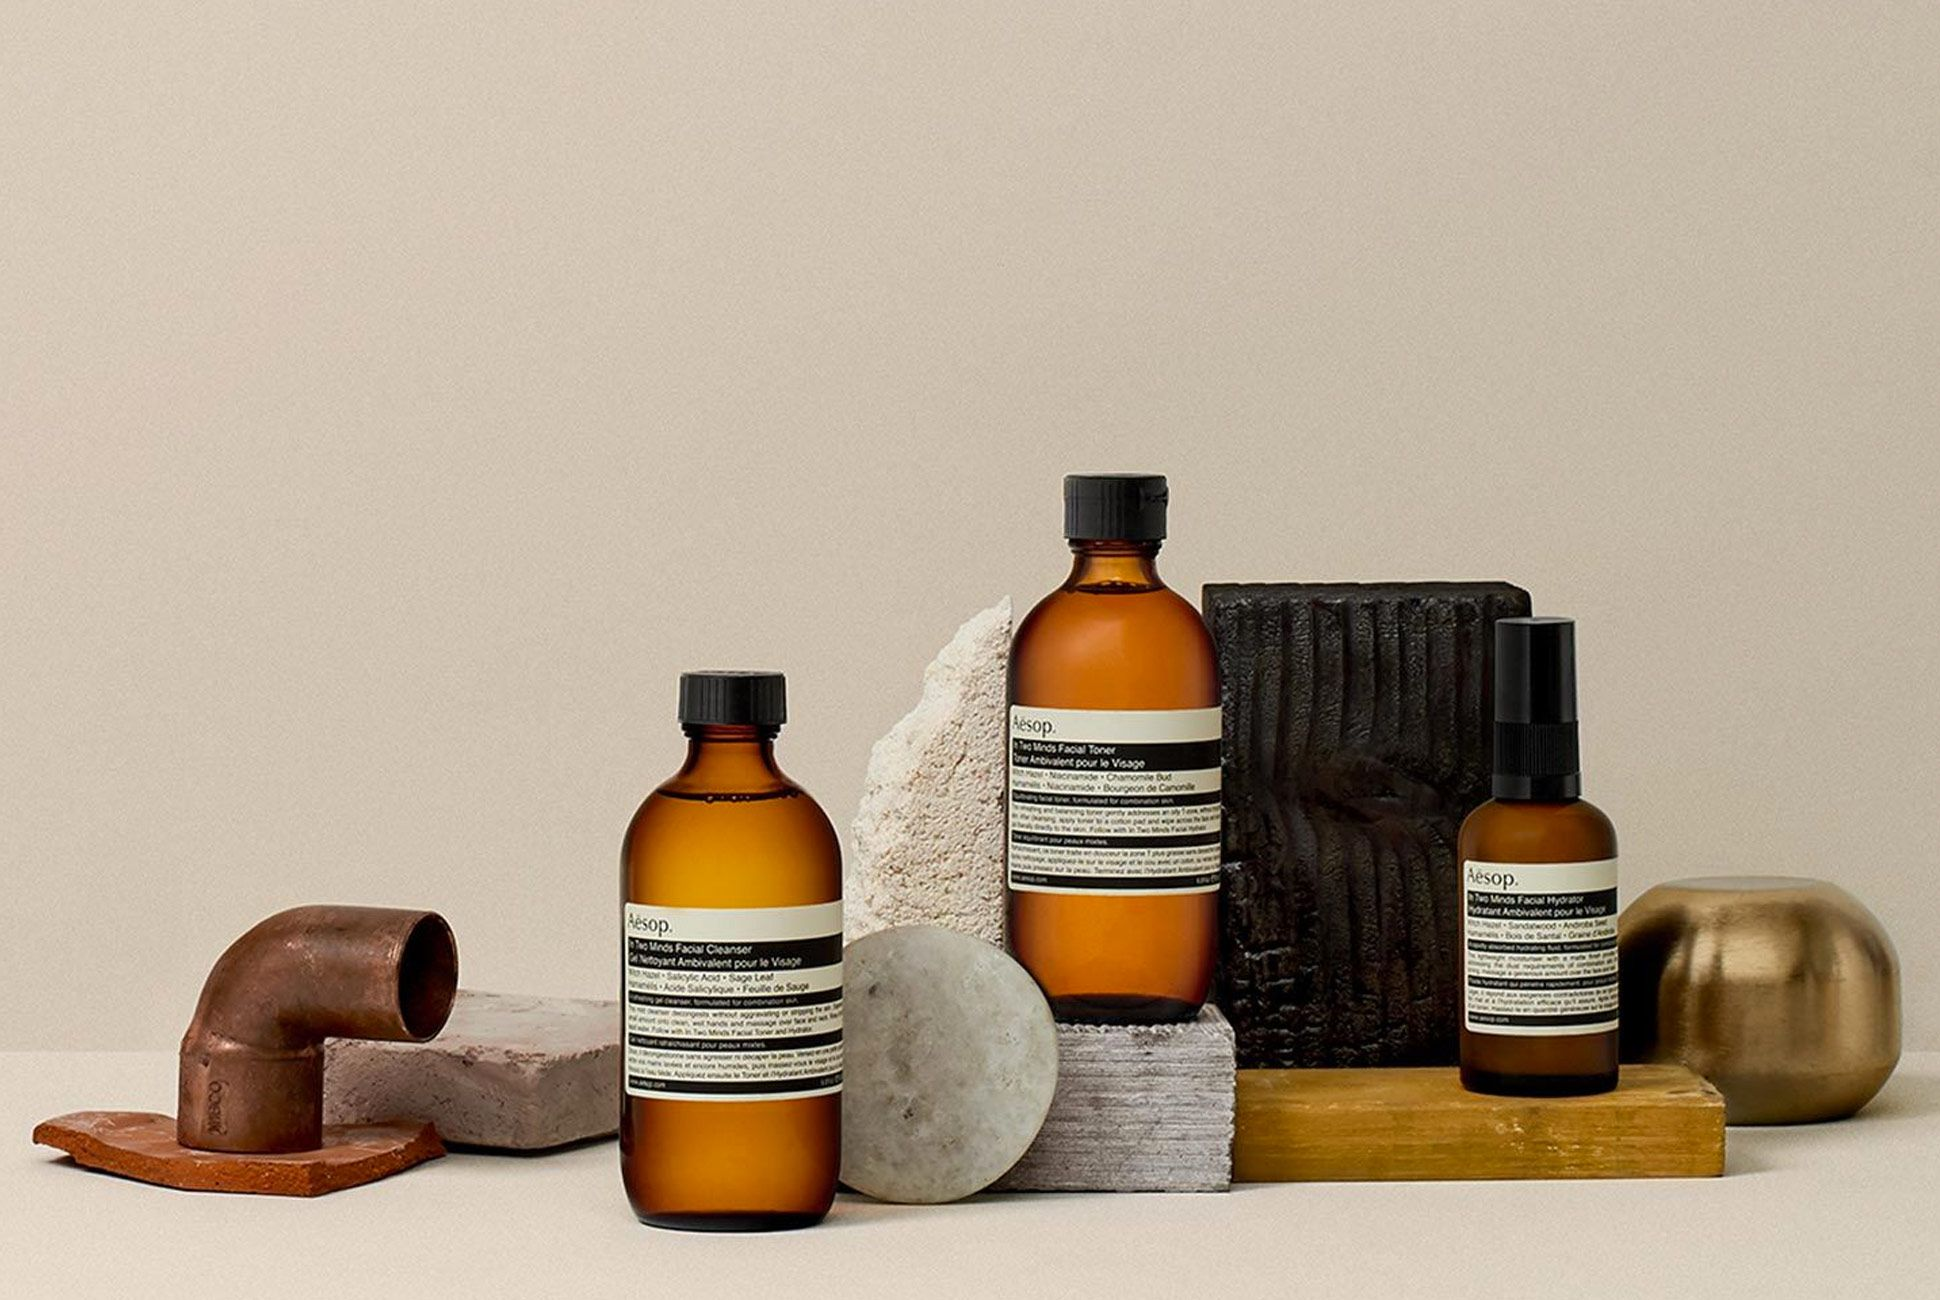 Aesop S Grooming Products Address A Major Skincare Woe Gear Patrol Aesop Skincare Combination Skin Type Combination Skin